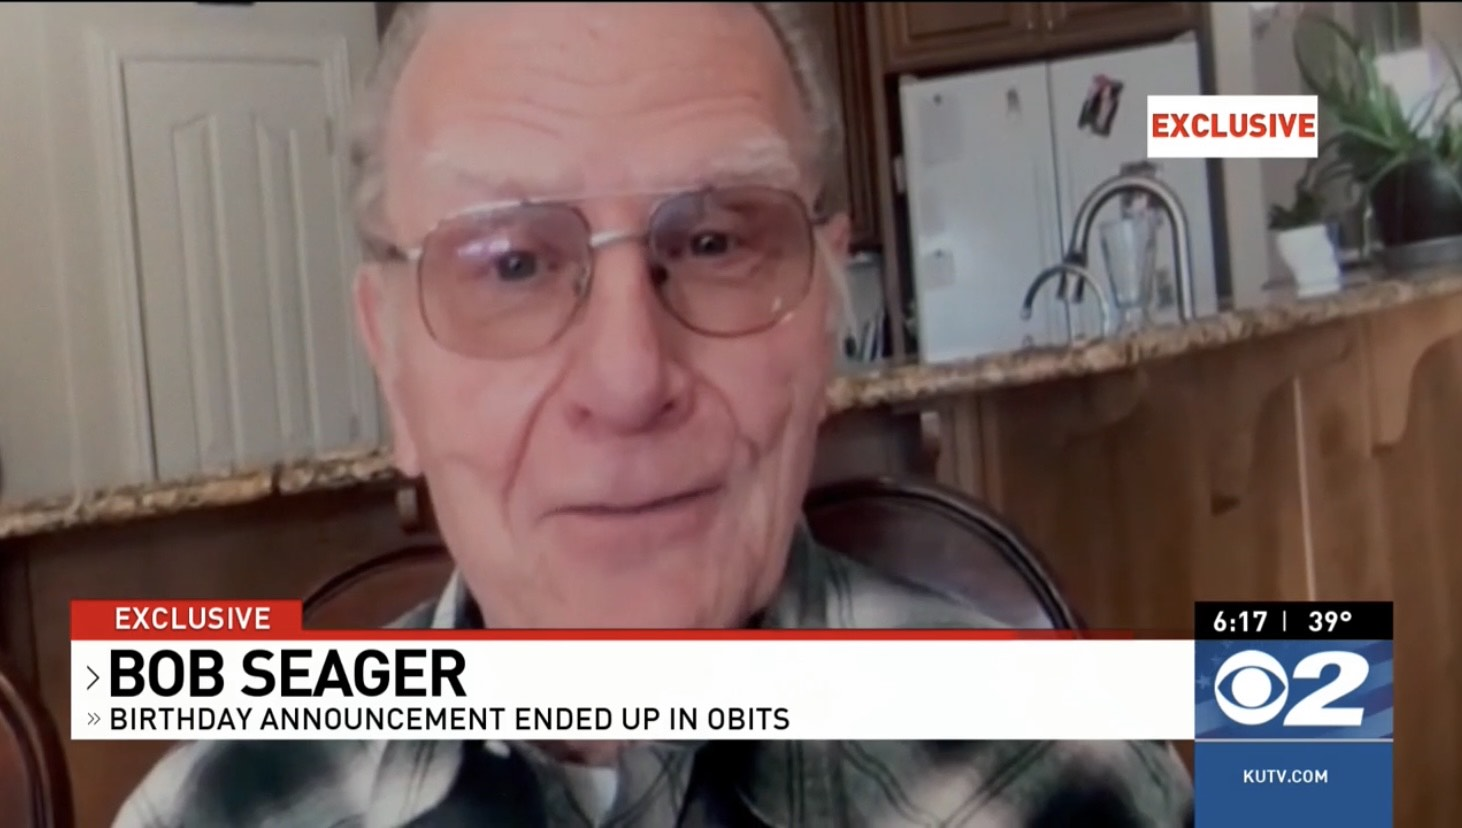 Bob Seager: Birthday Announcement Ended Up In Obits